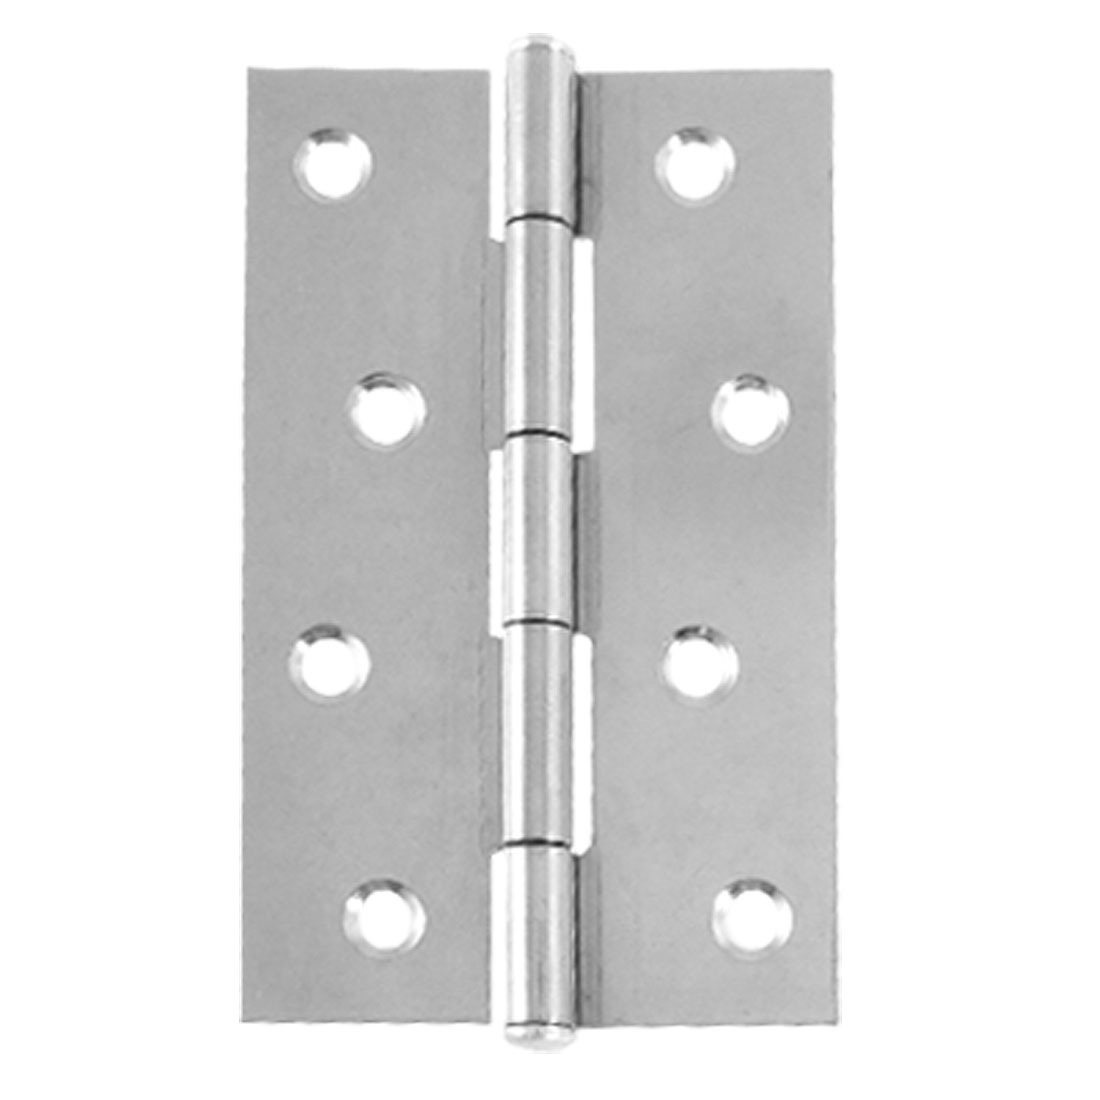 "3 1/2"" x 1 1/10"" Stainless Steel Door Butt Hinges 2 Pcs"